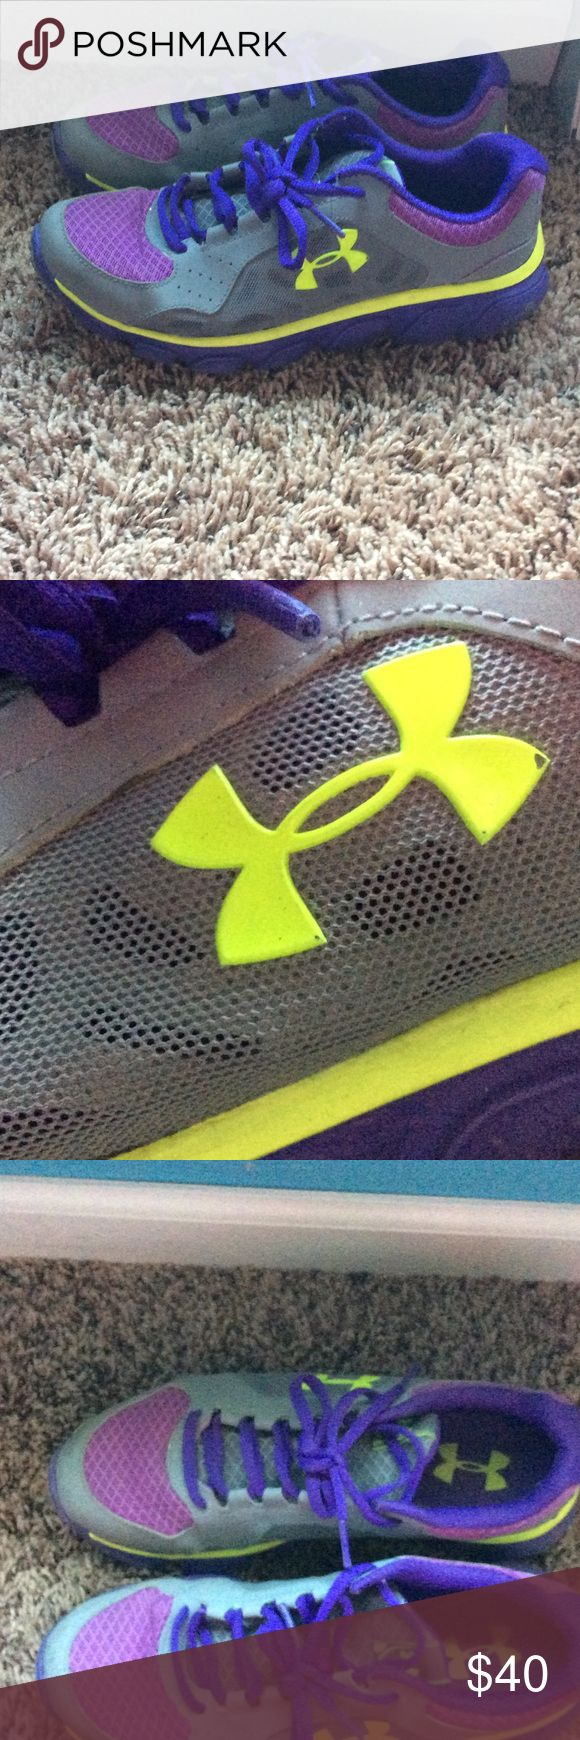 under armer sneakers so cozy great for school Under Armour Shoes Sneakers